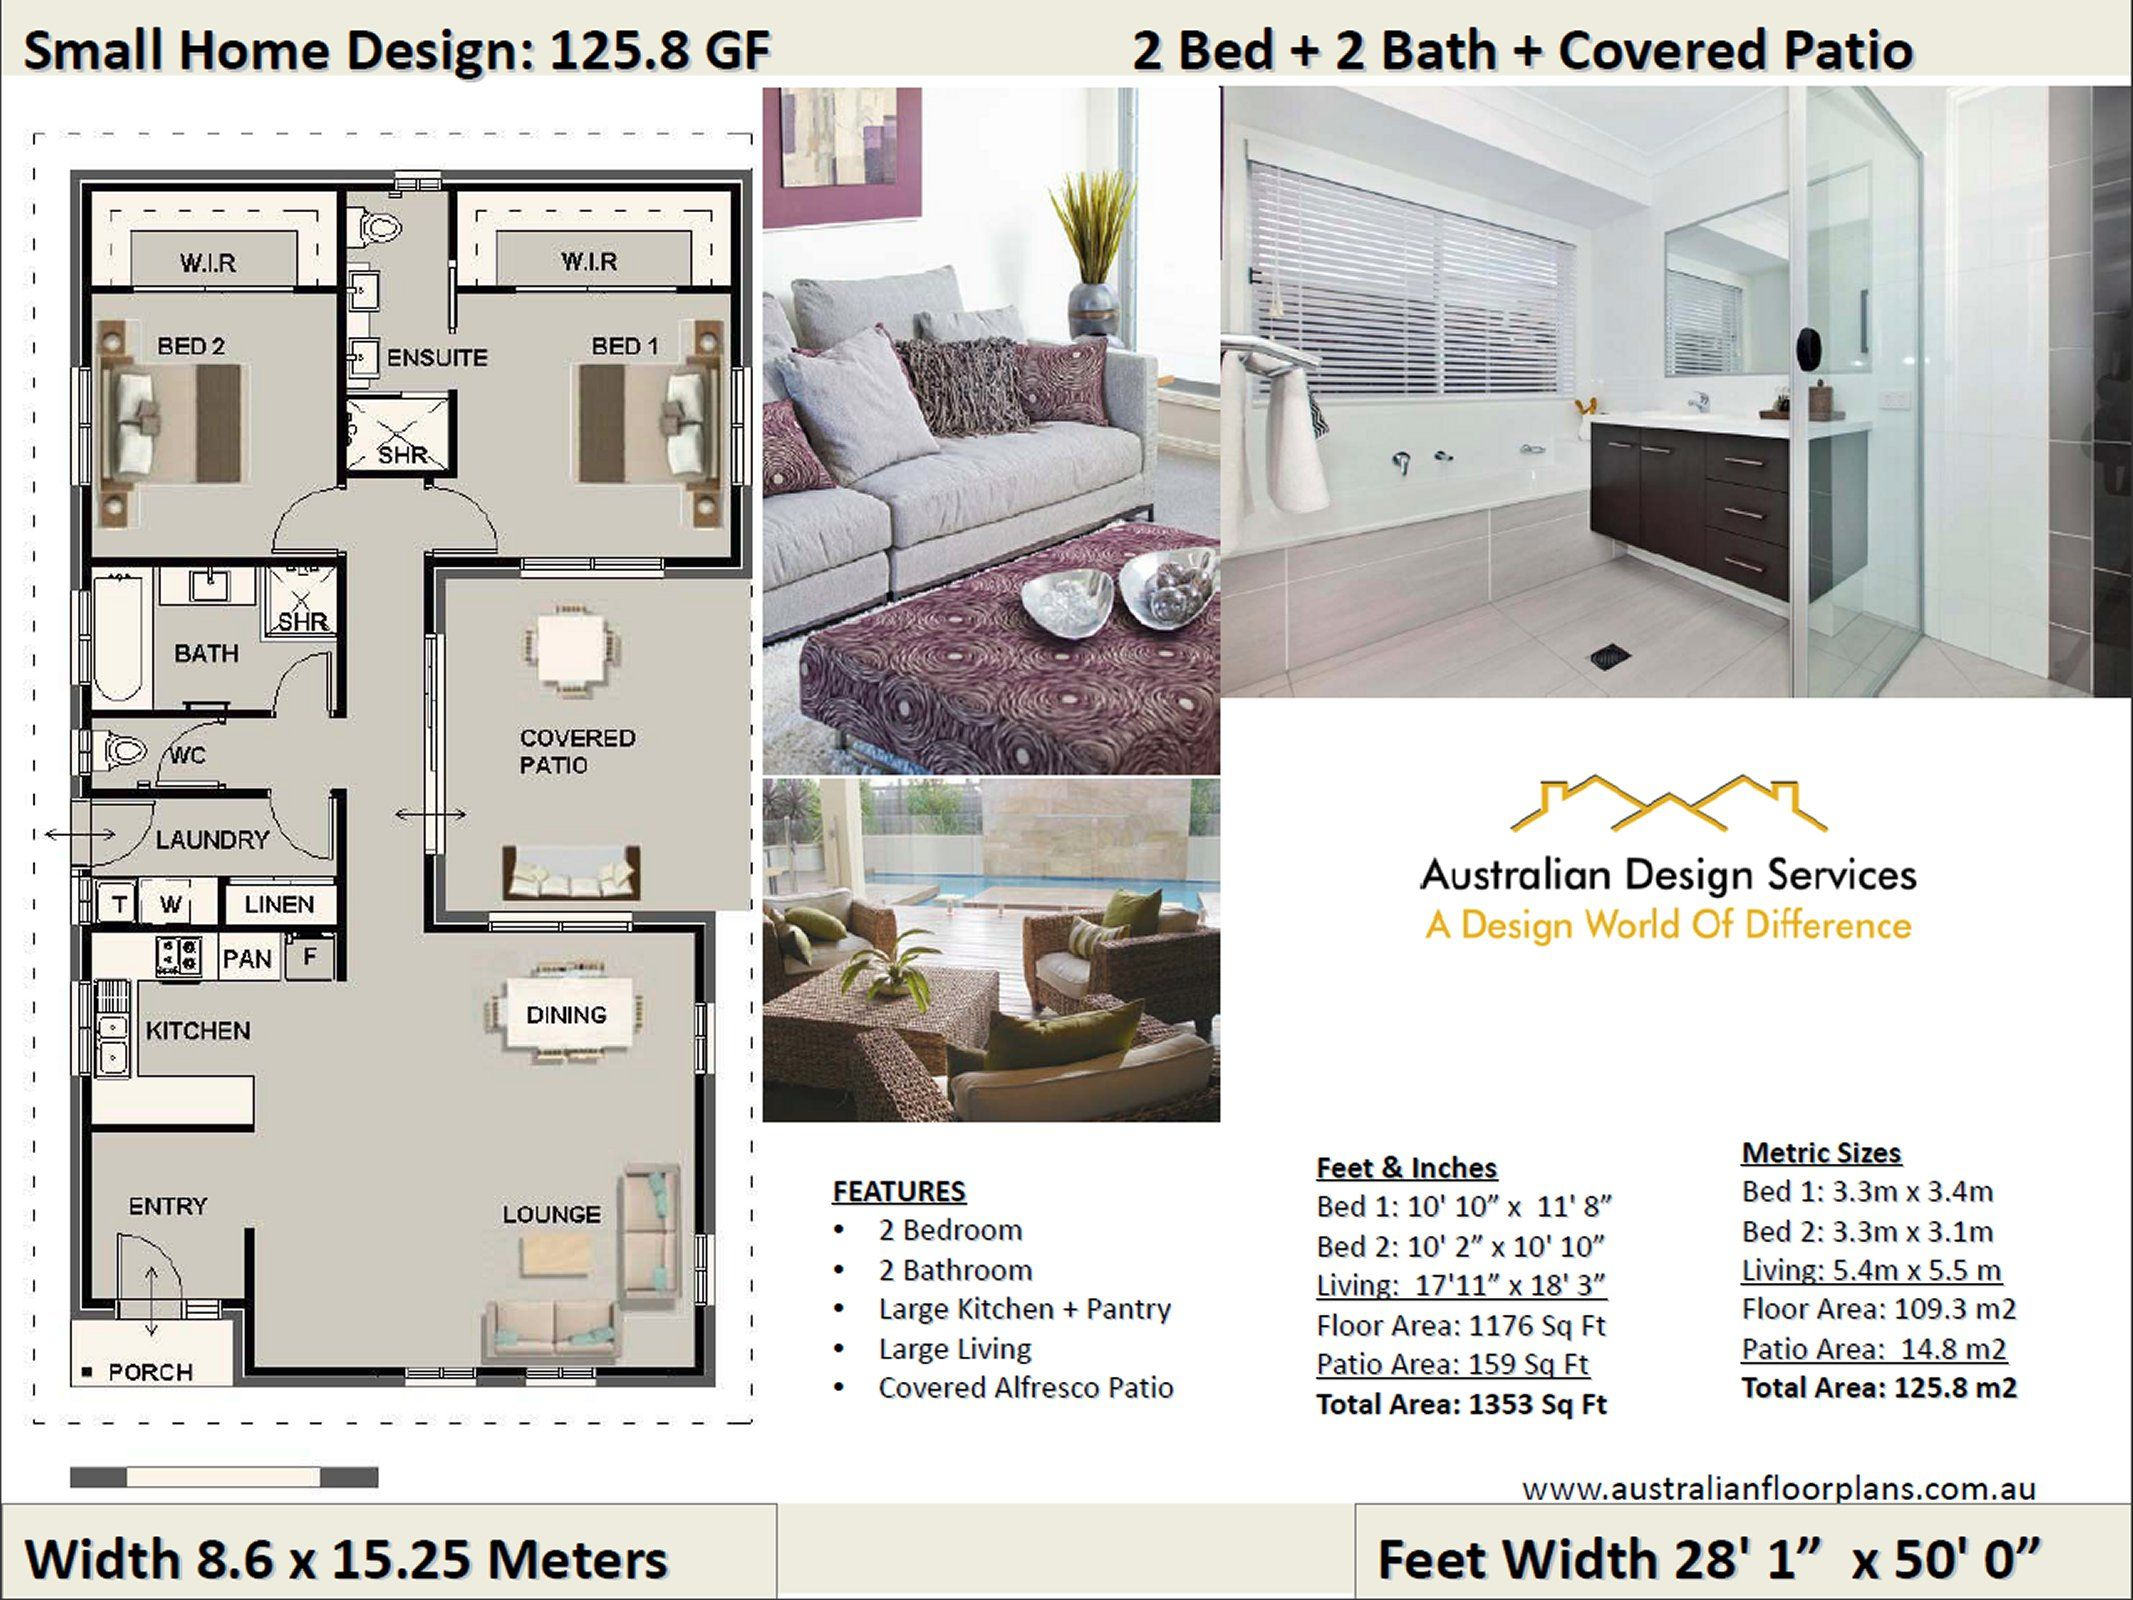 Small Home Design 2 Bed 2 Bath House Plan 125 8gf Concept House Plan Set Small House Design Small House Plans Bedroom House Plans